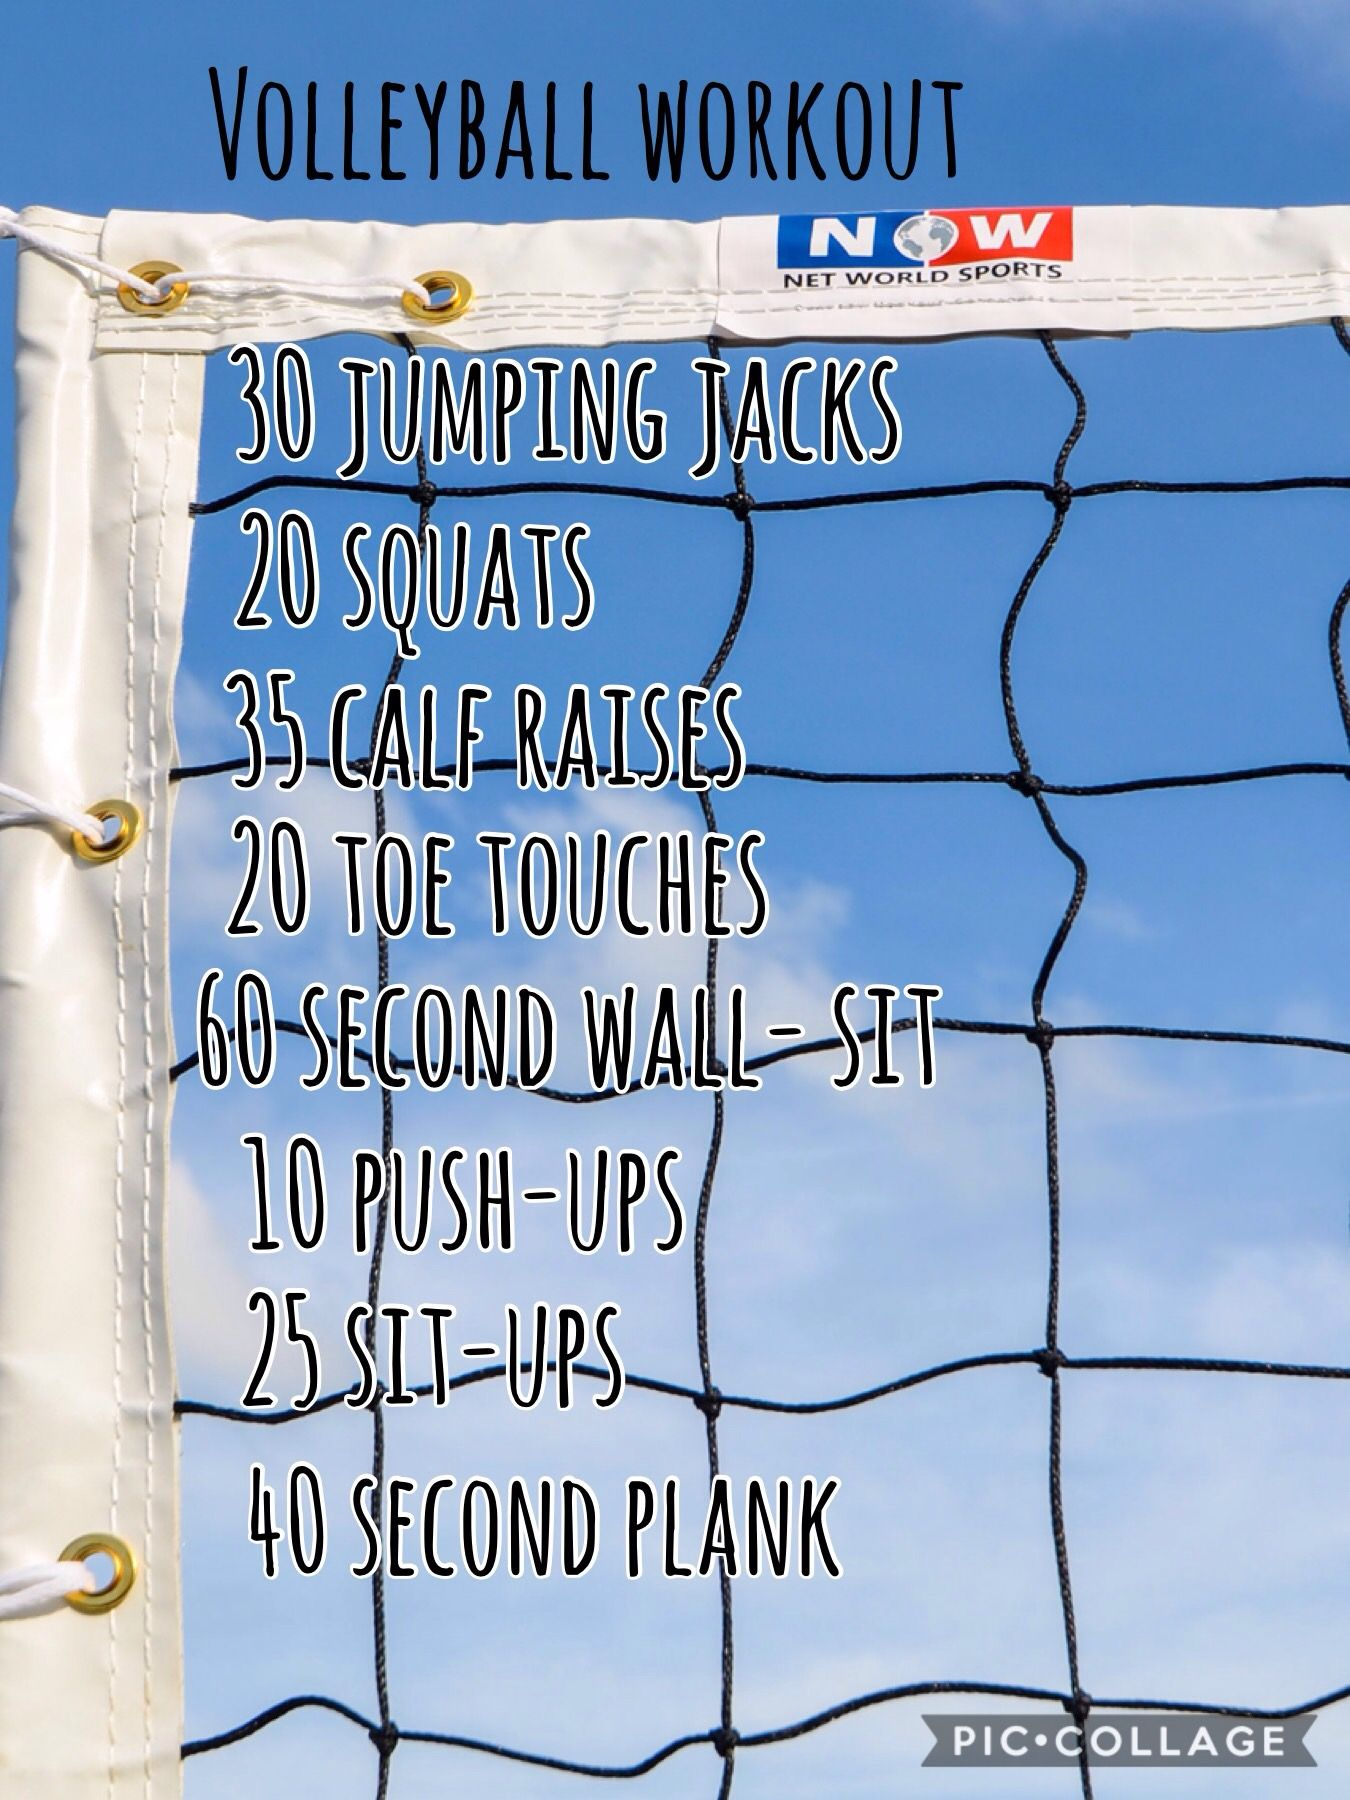 Here S A Great Workout For Vball Players Volleyball Workouts Volleyball Skills Volleyball Training